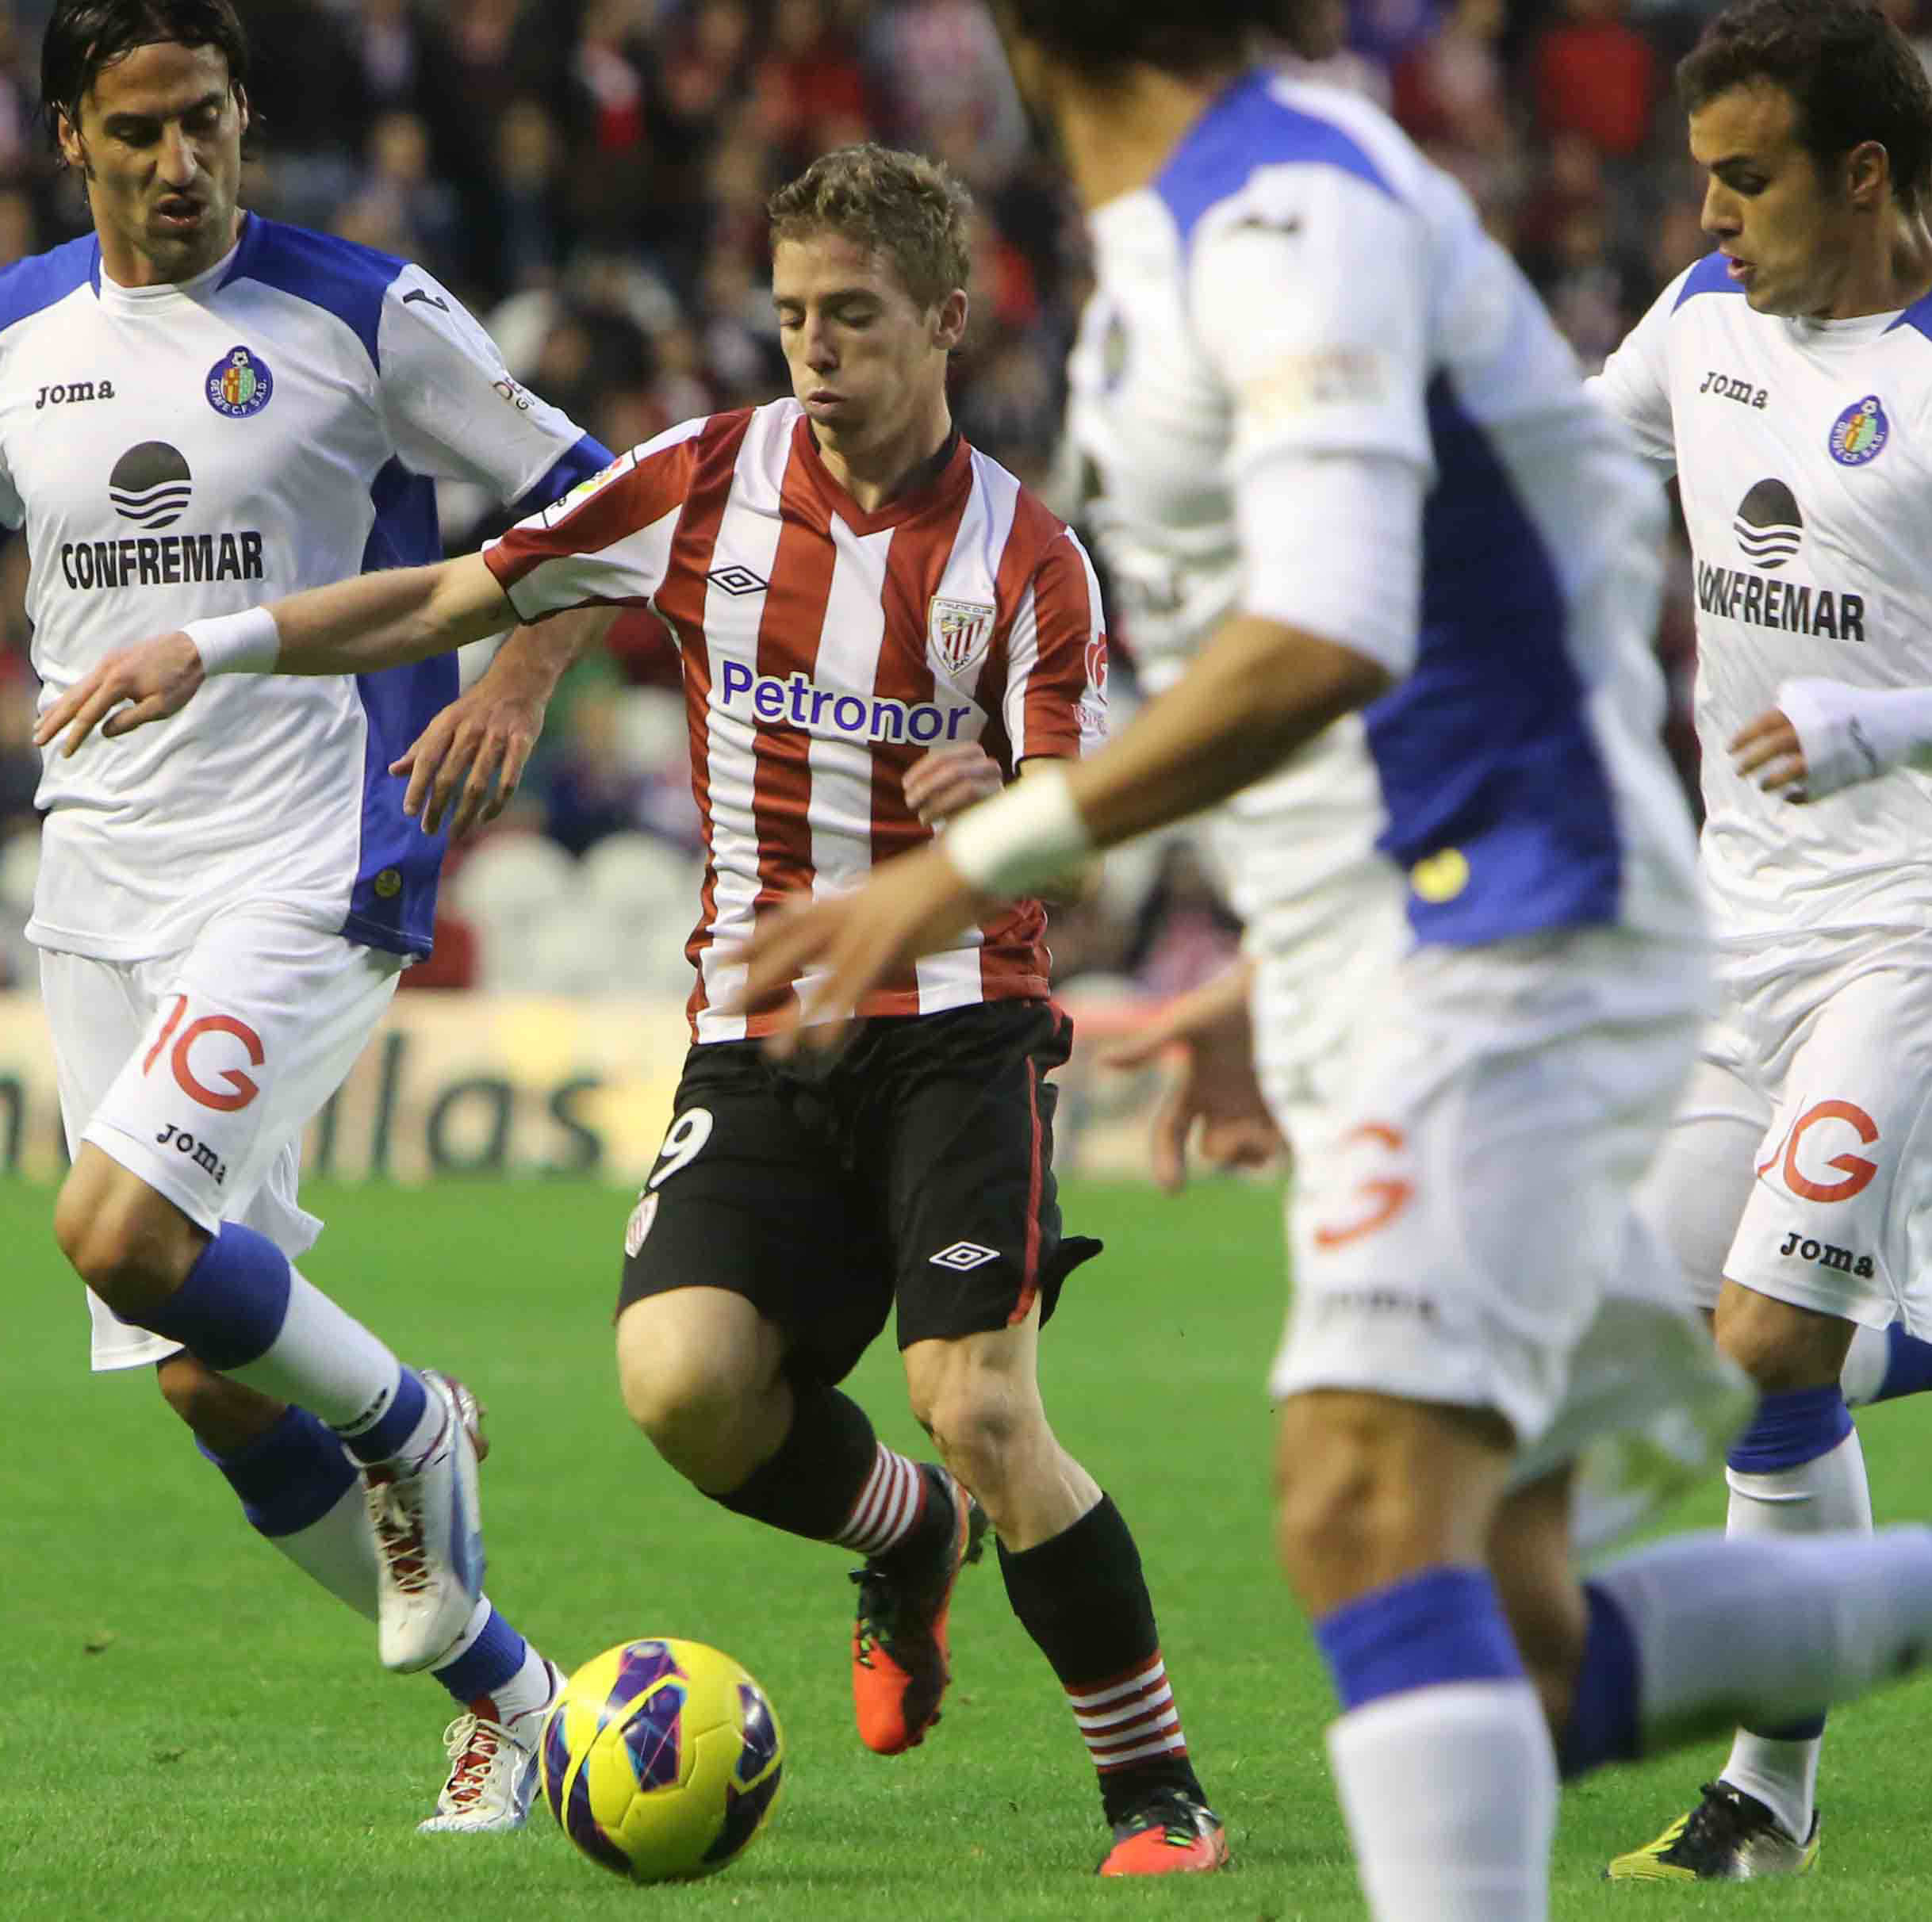 Al Athletic no le sale nada